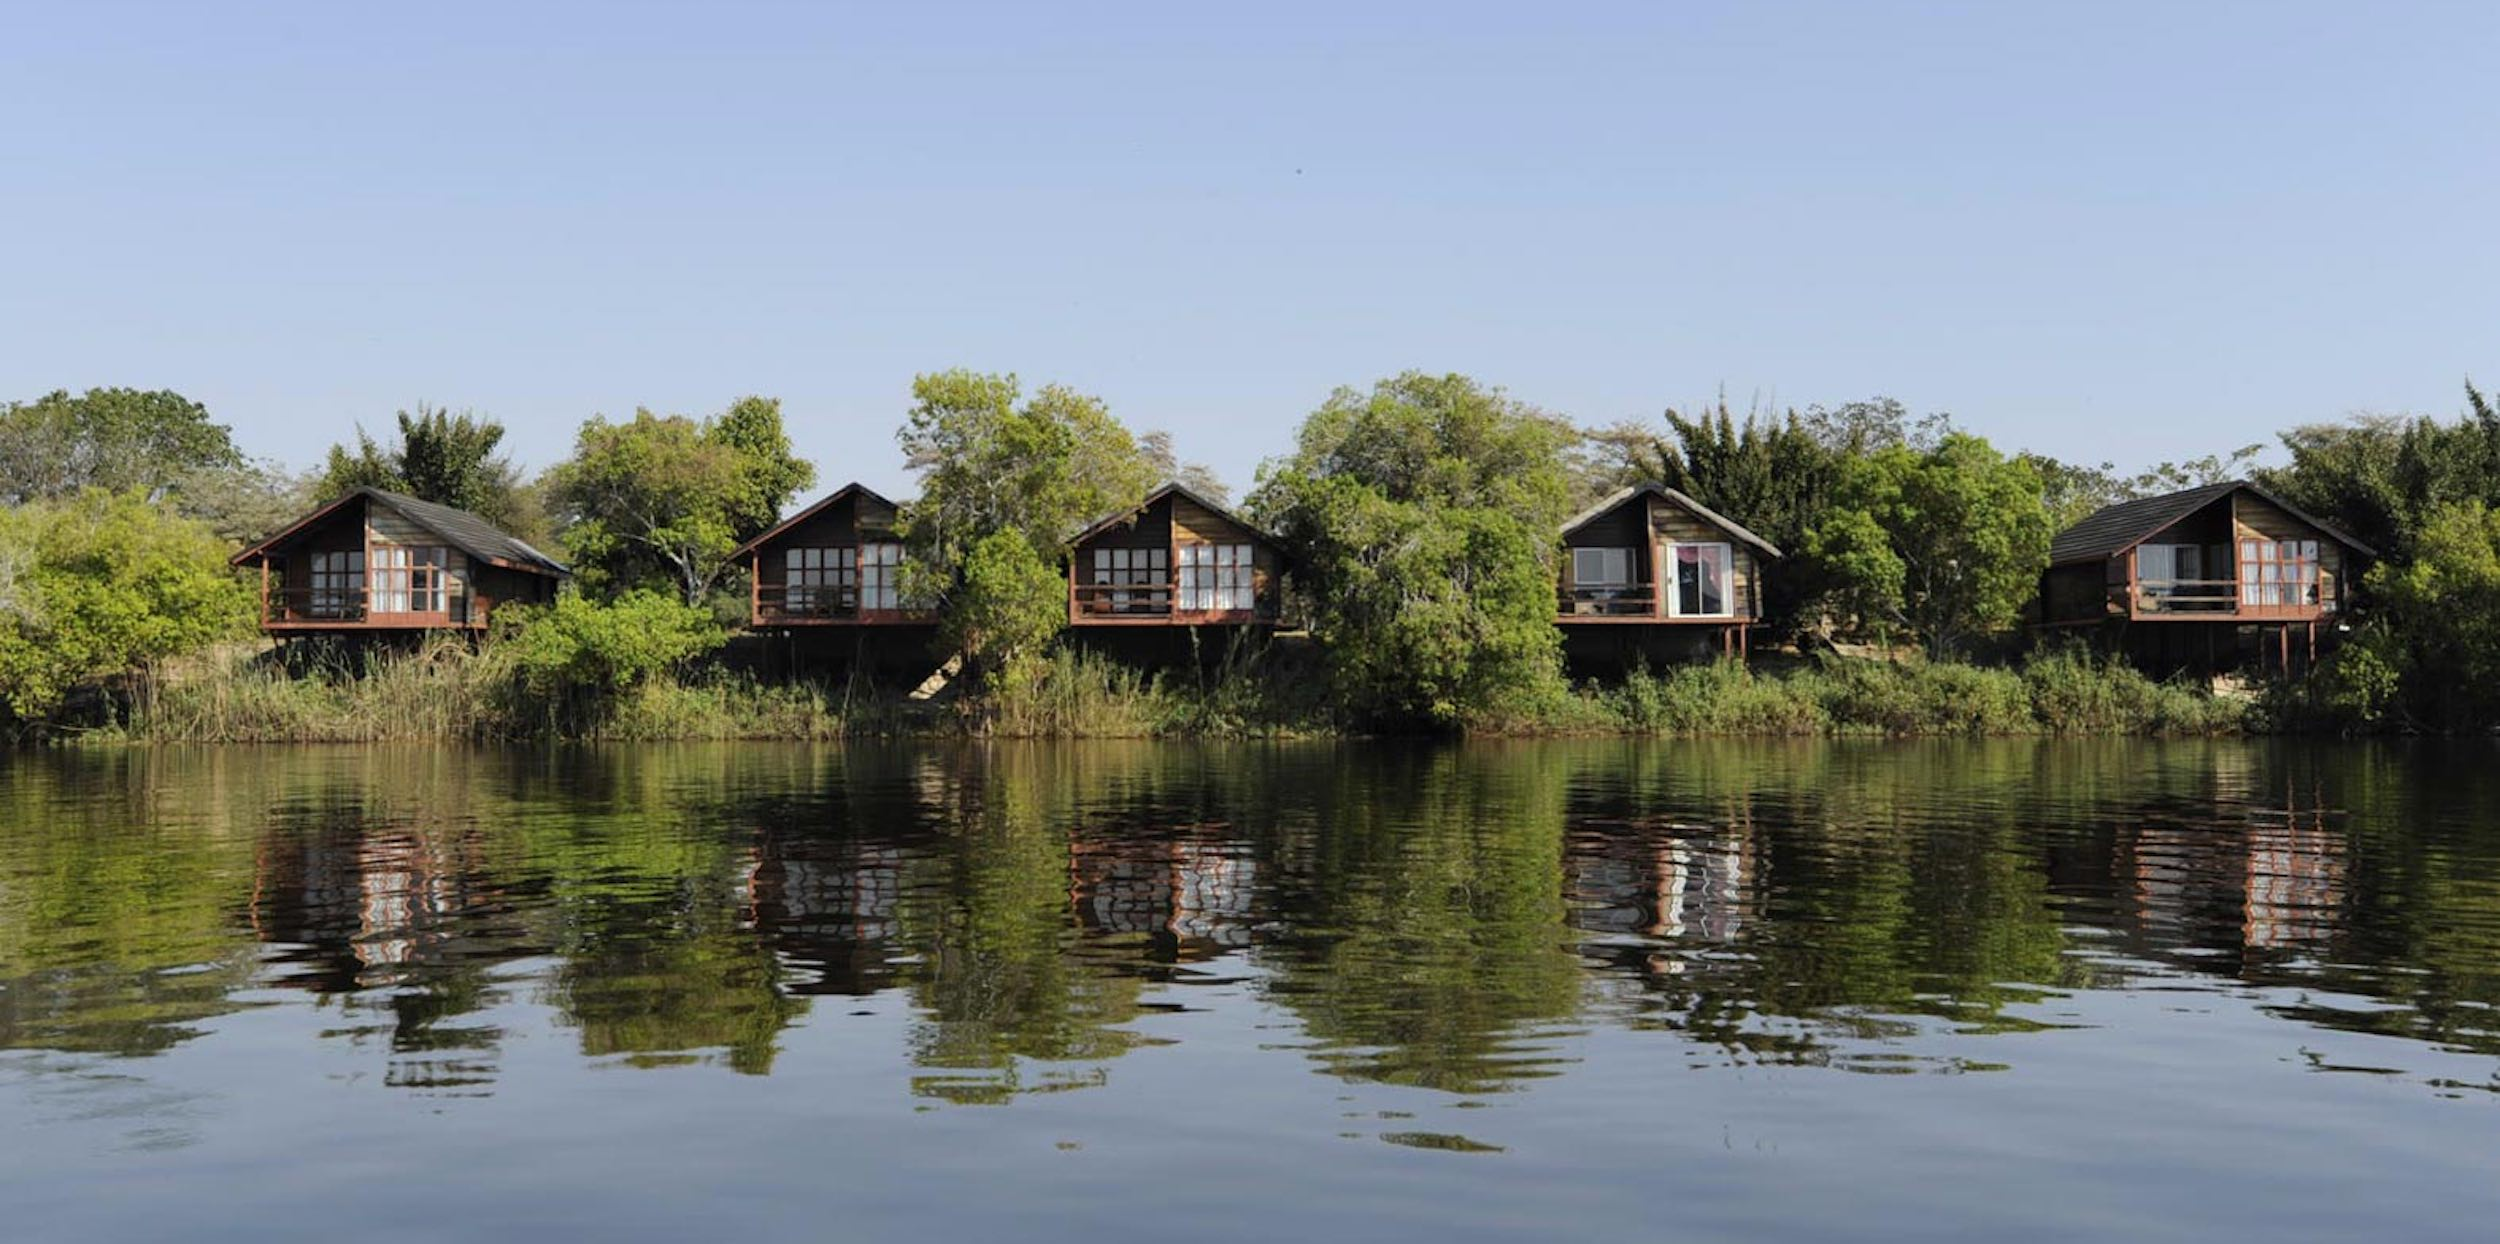 Luxury chalets peer out from amongst lush greenery overlooking the river.